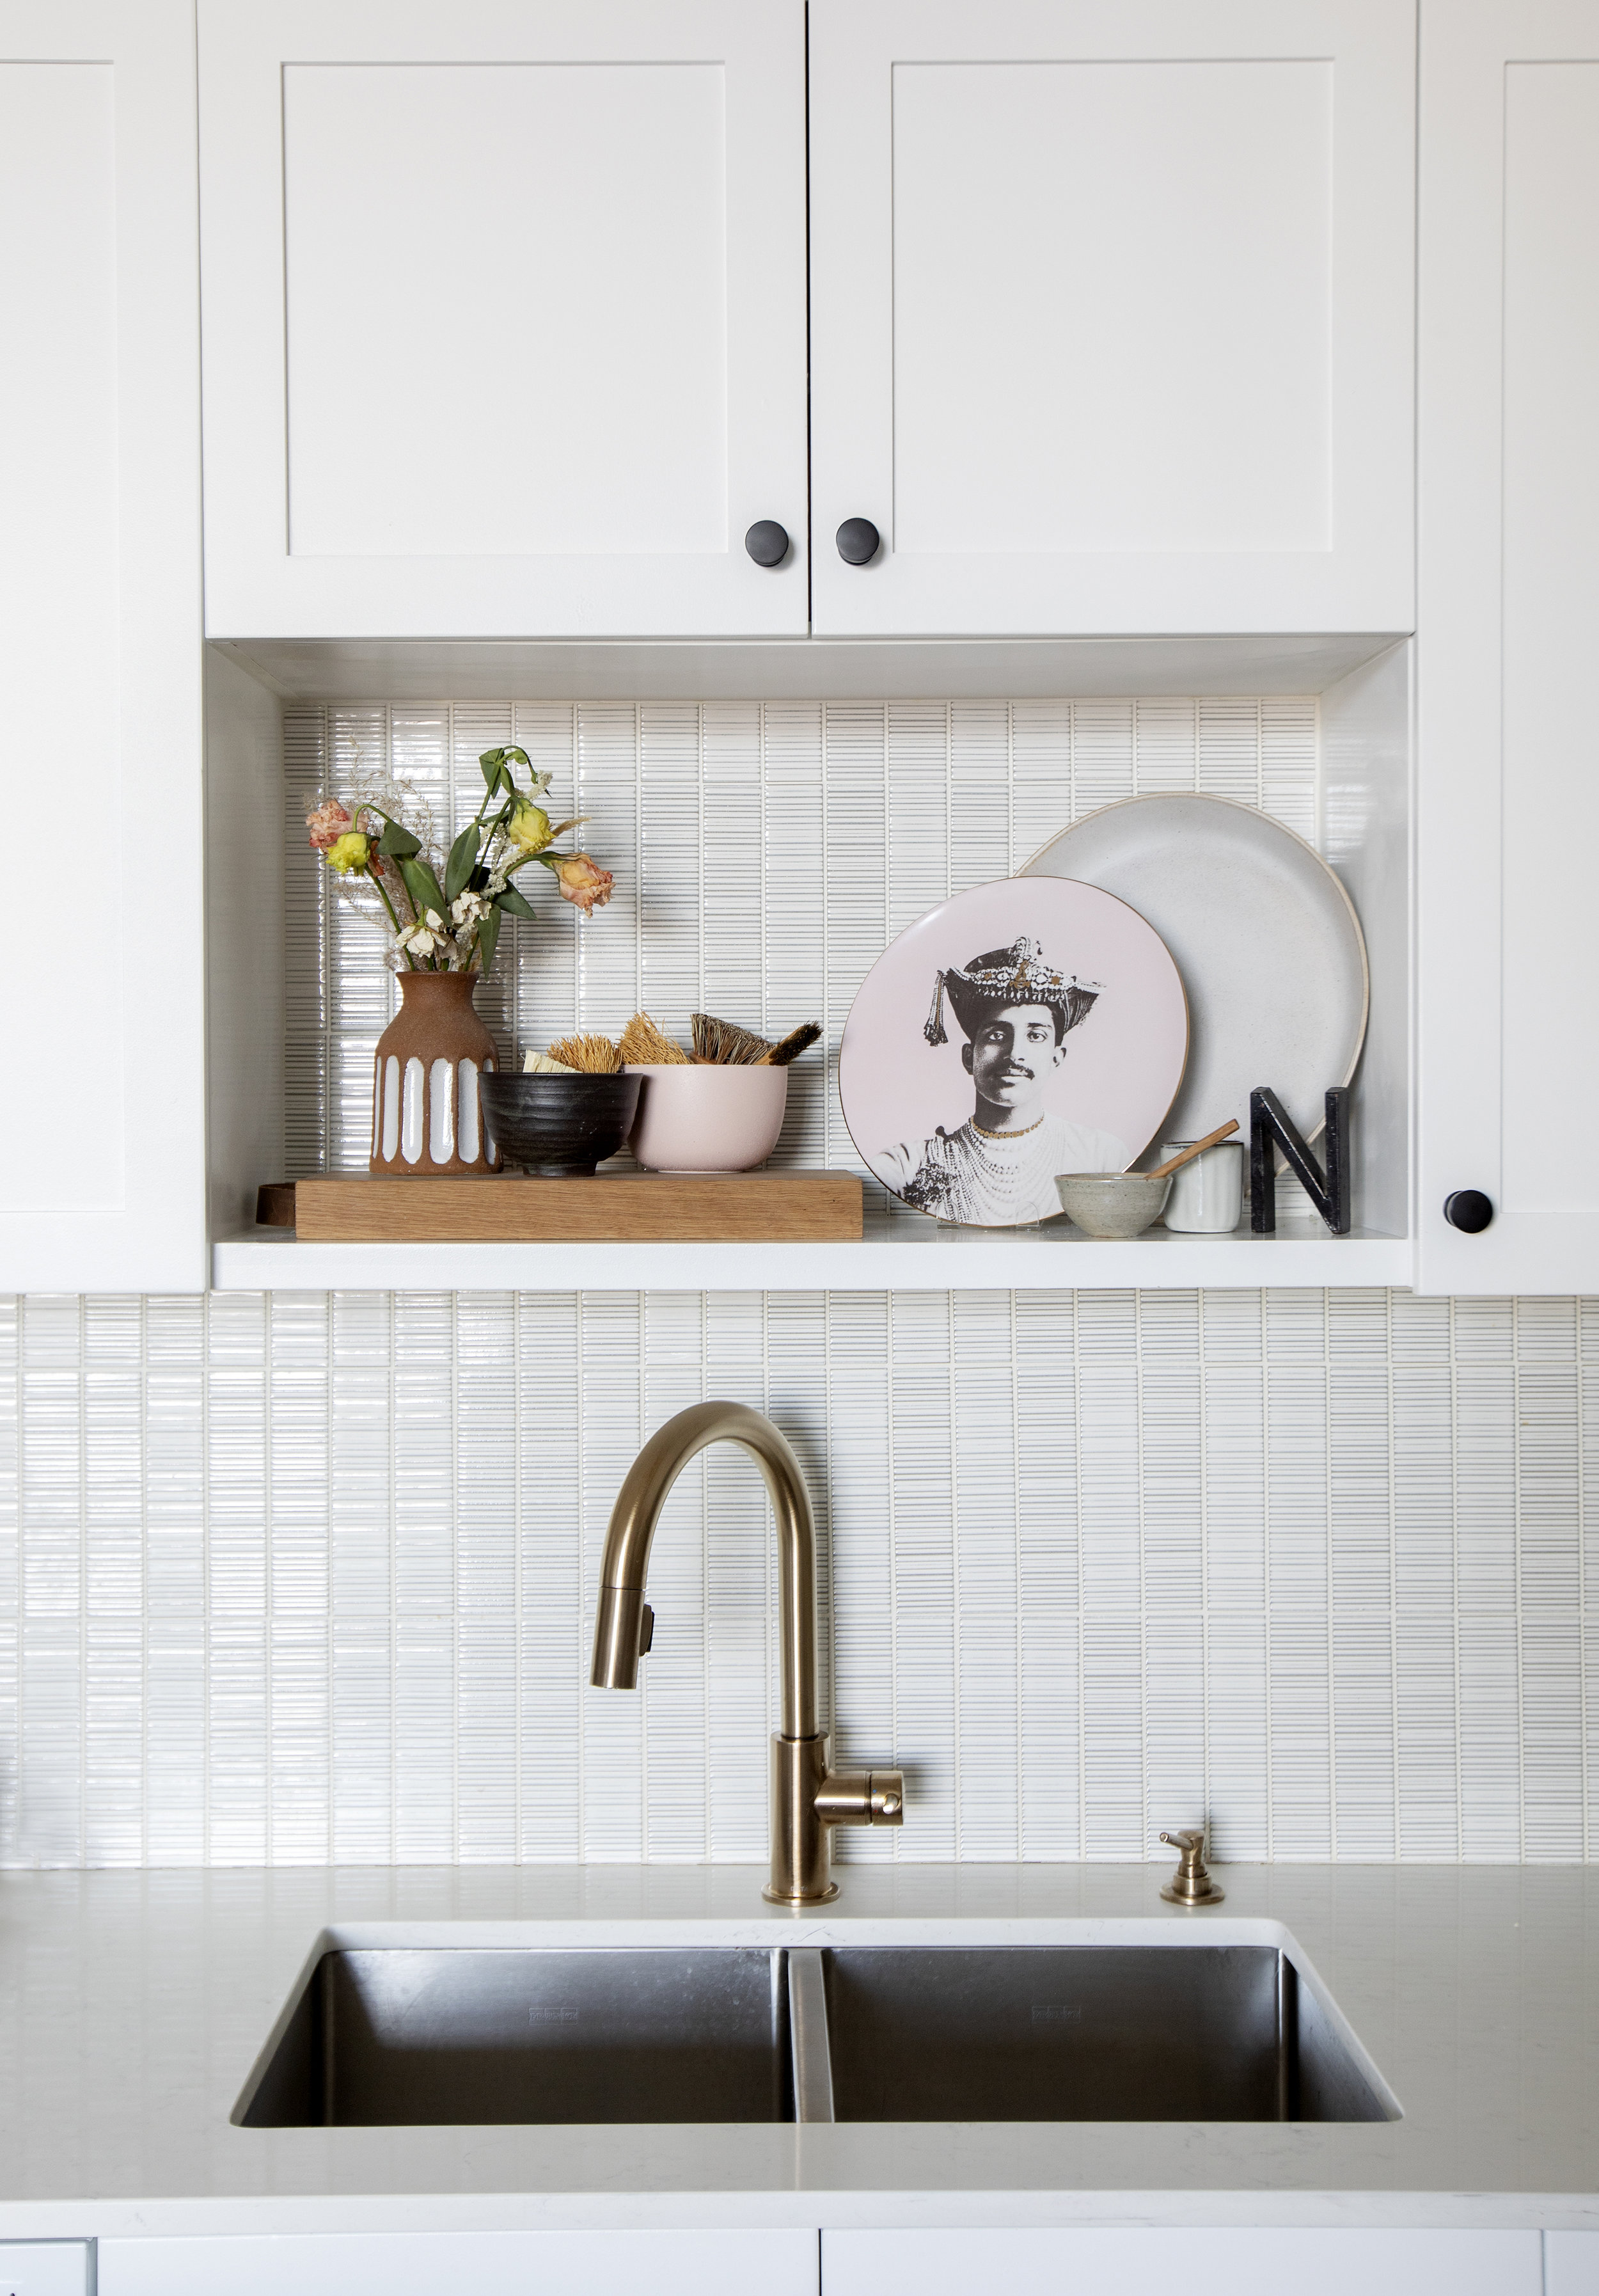 The kitchen sink at Prince Edward Street, including a tiled backspalsh and decorative shelf with interesting decor